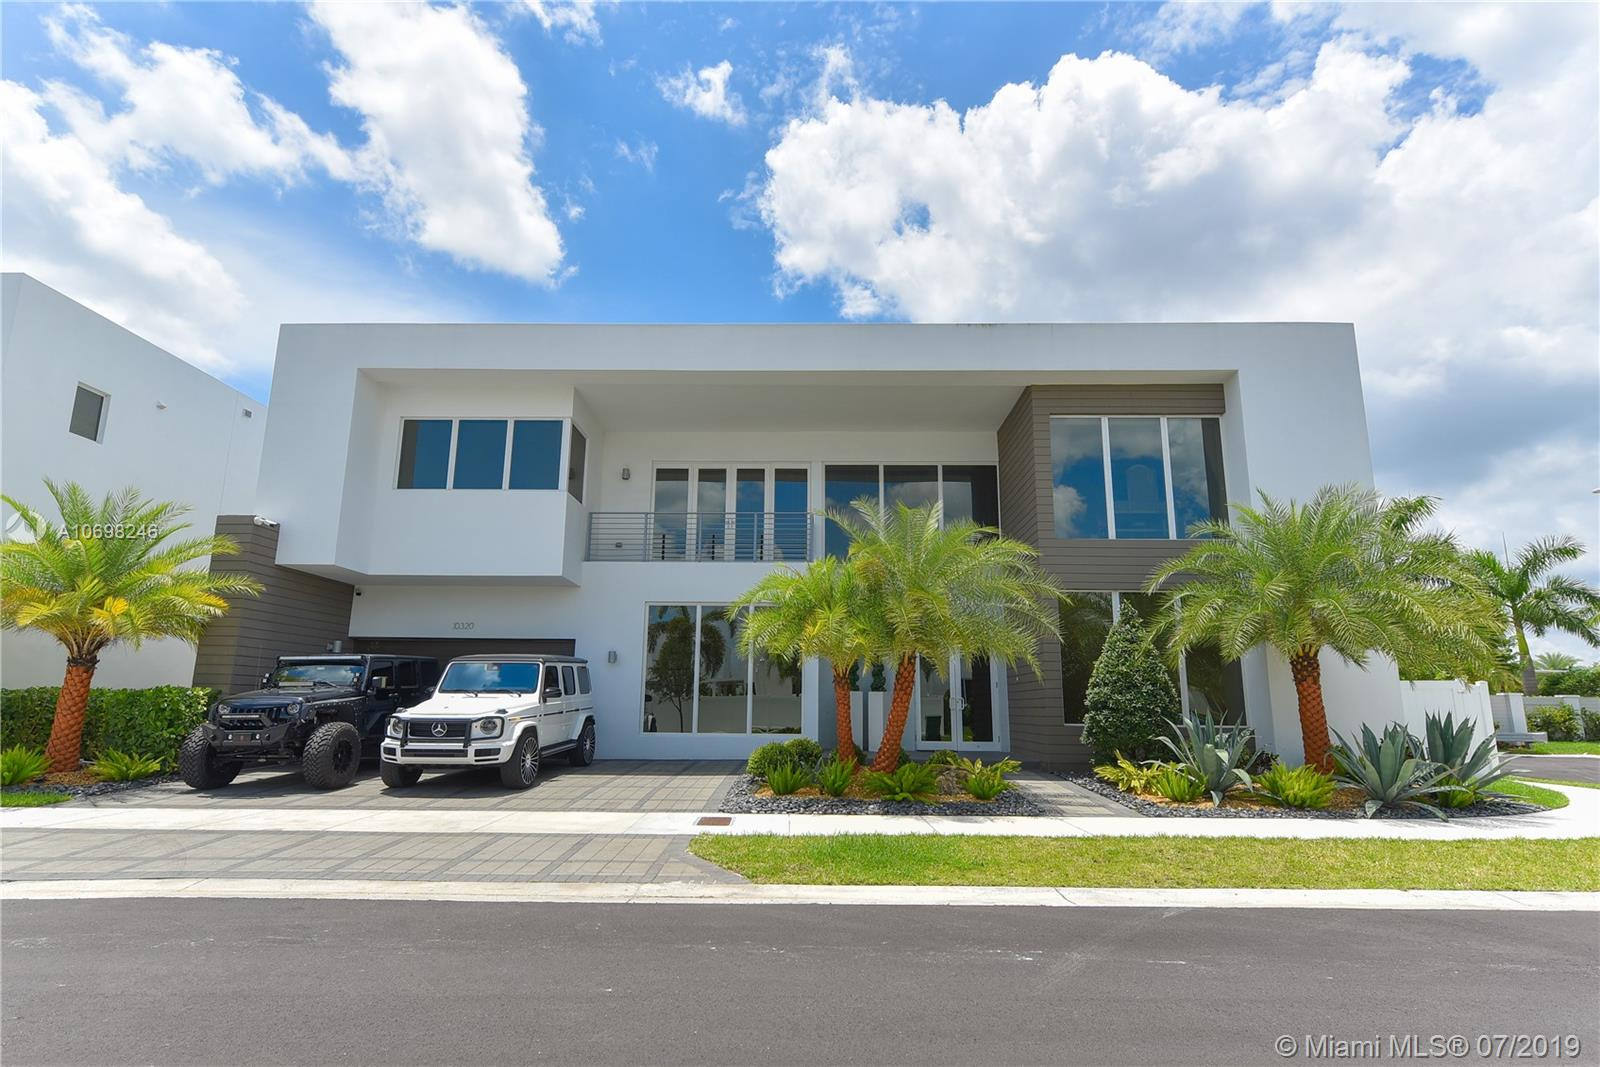 10320 NW 74th Ter, one of homes for sale in Doral